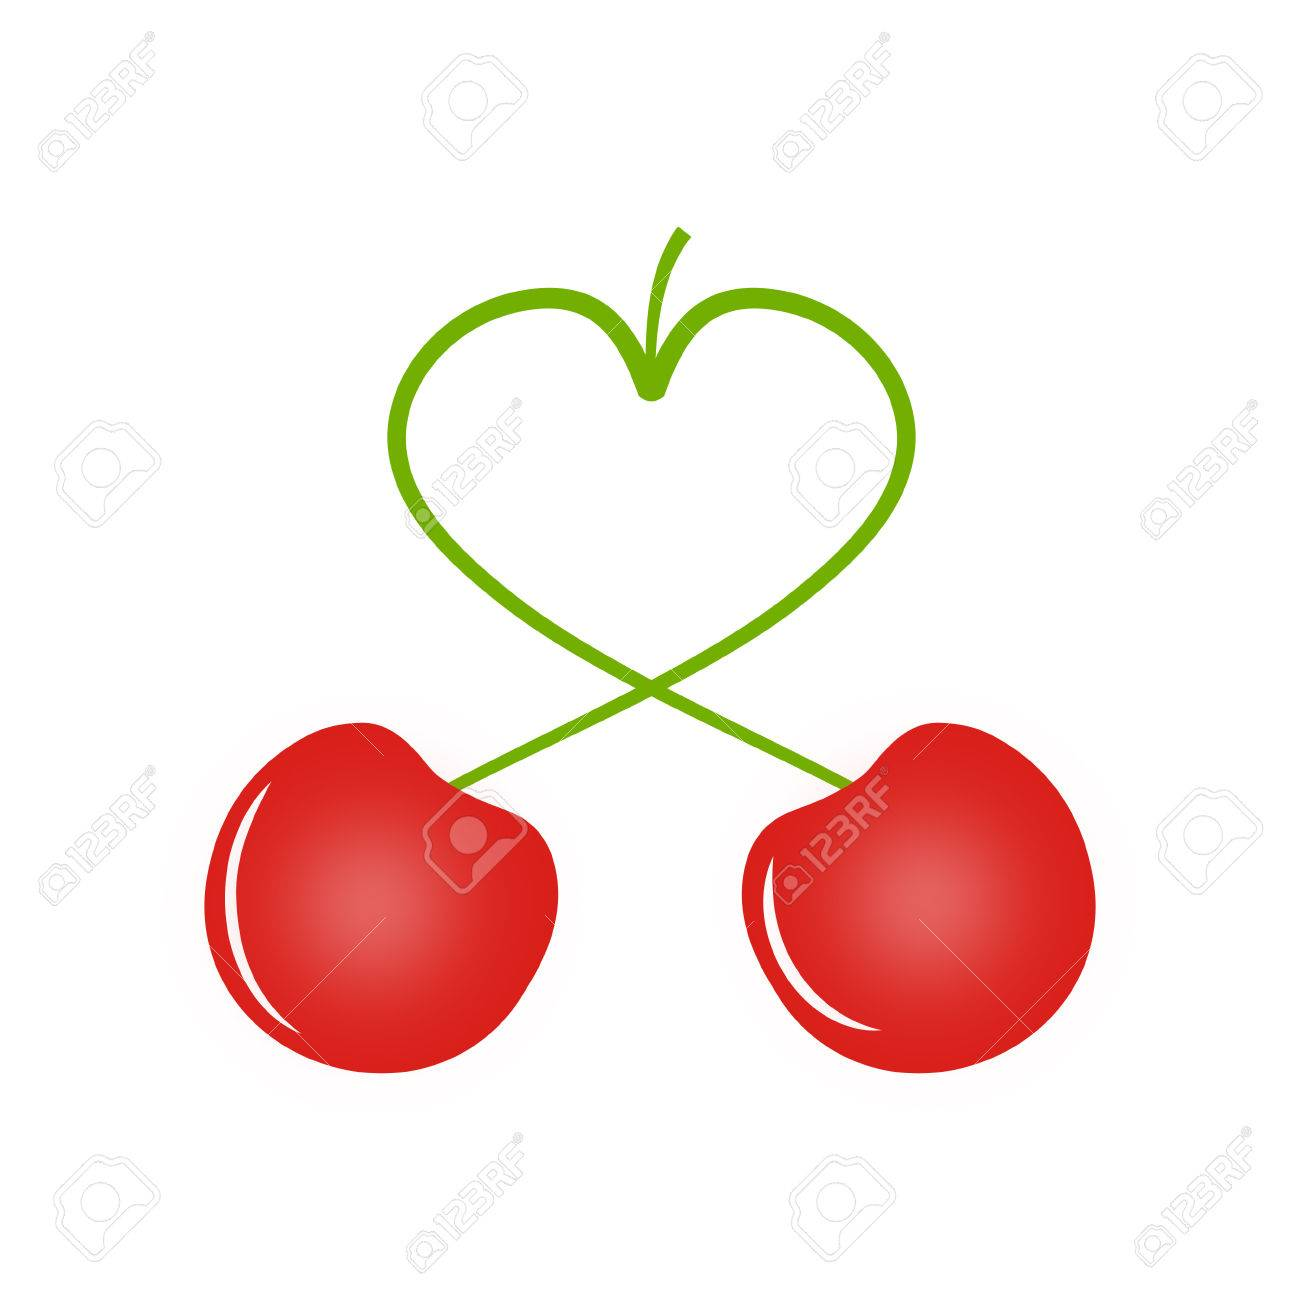 Two Cherries, Cherry Has The Peduncle In The Shape Of A Heart ...